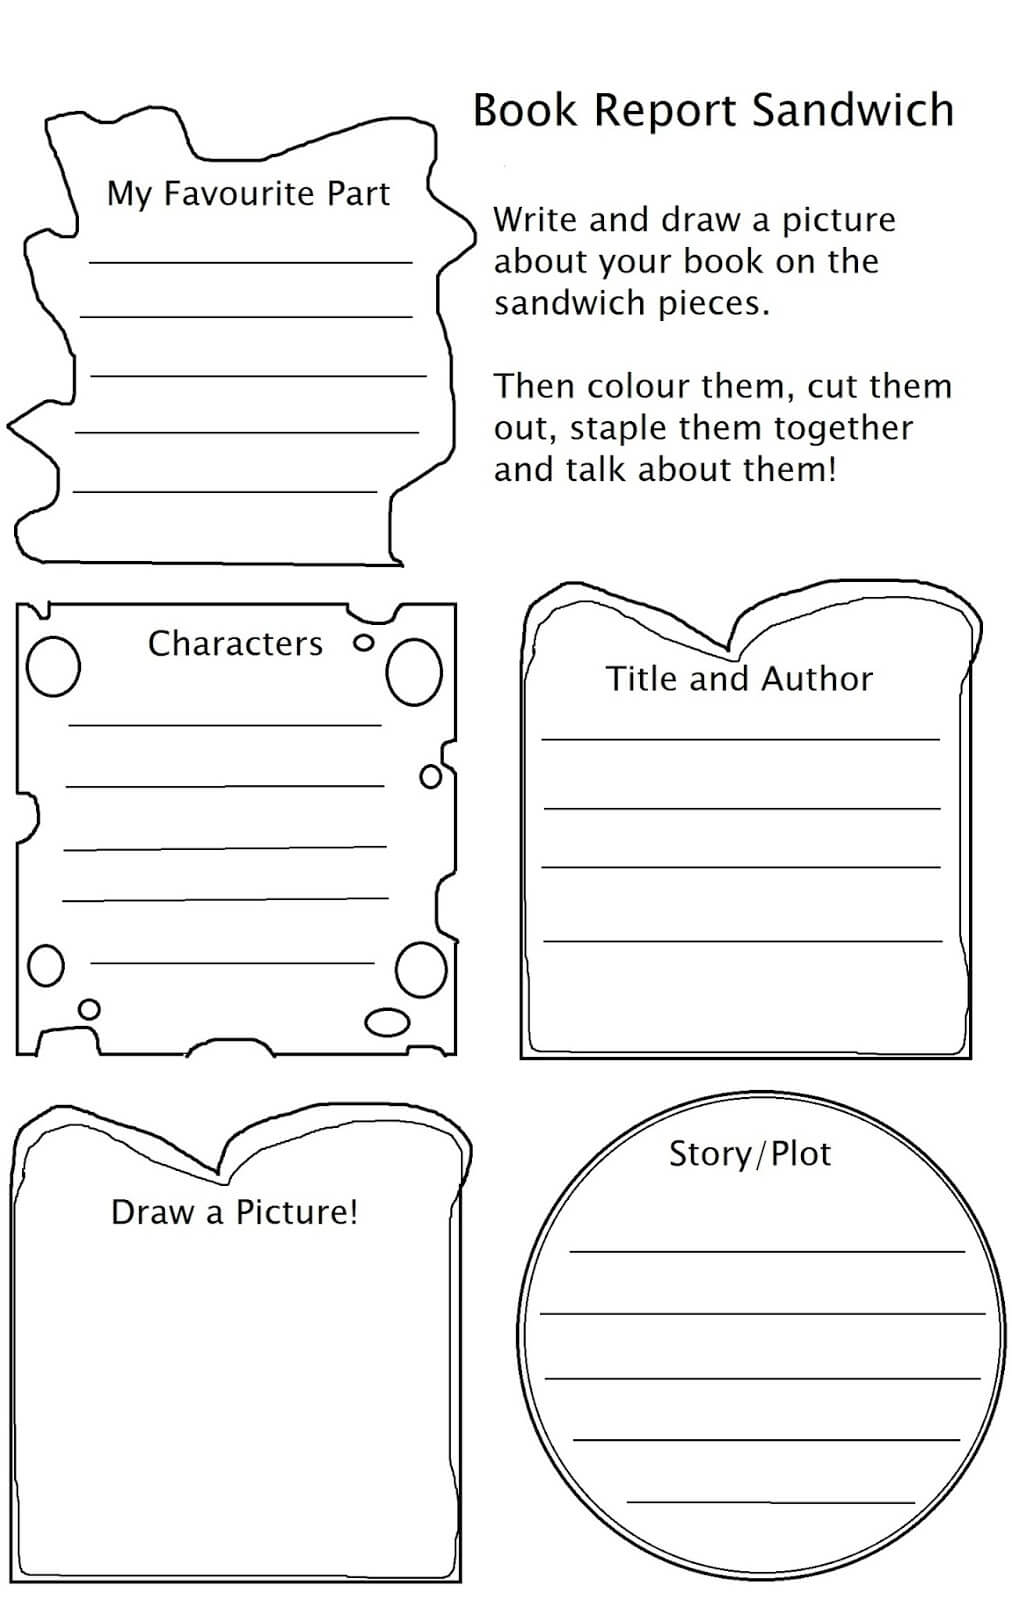 Cheeseburger And Sandwich Book Reports K 6Th Grade Inside Sandwich Book Report Printable Template